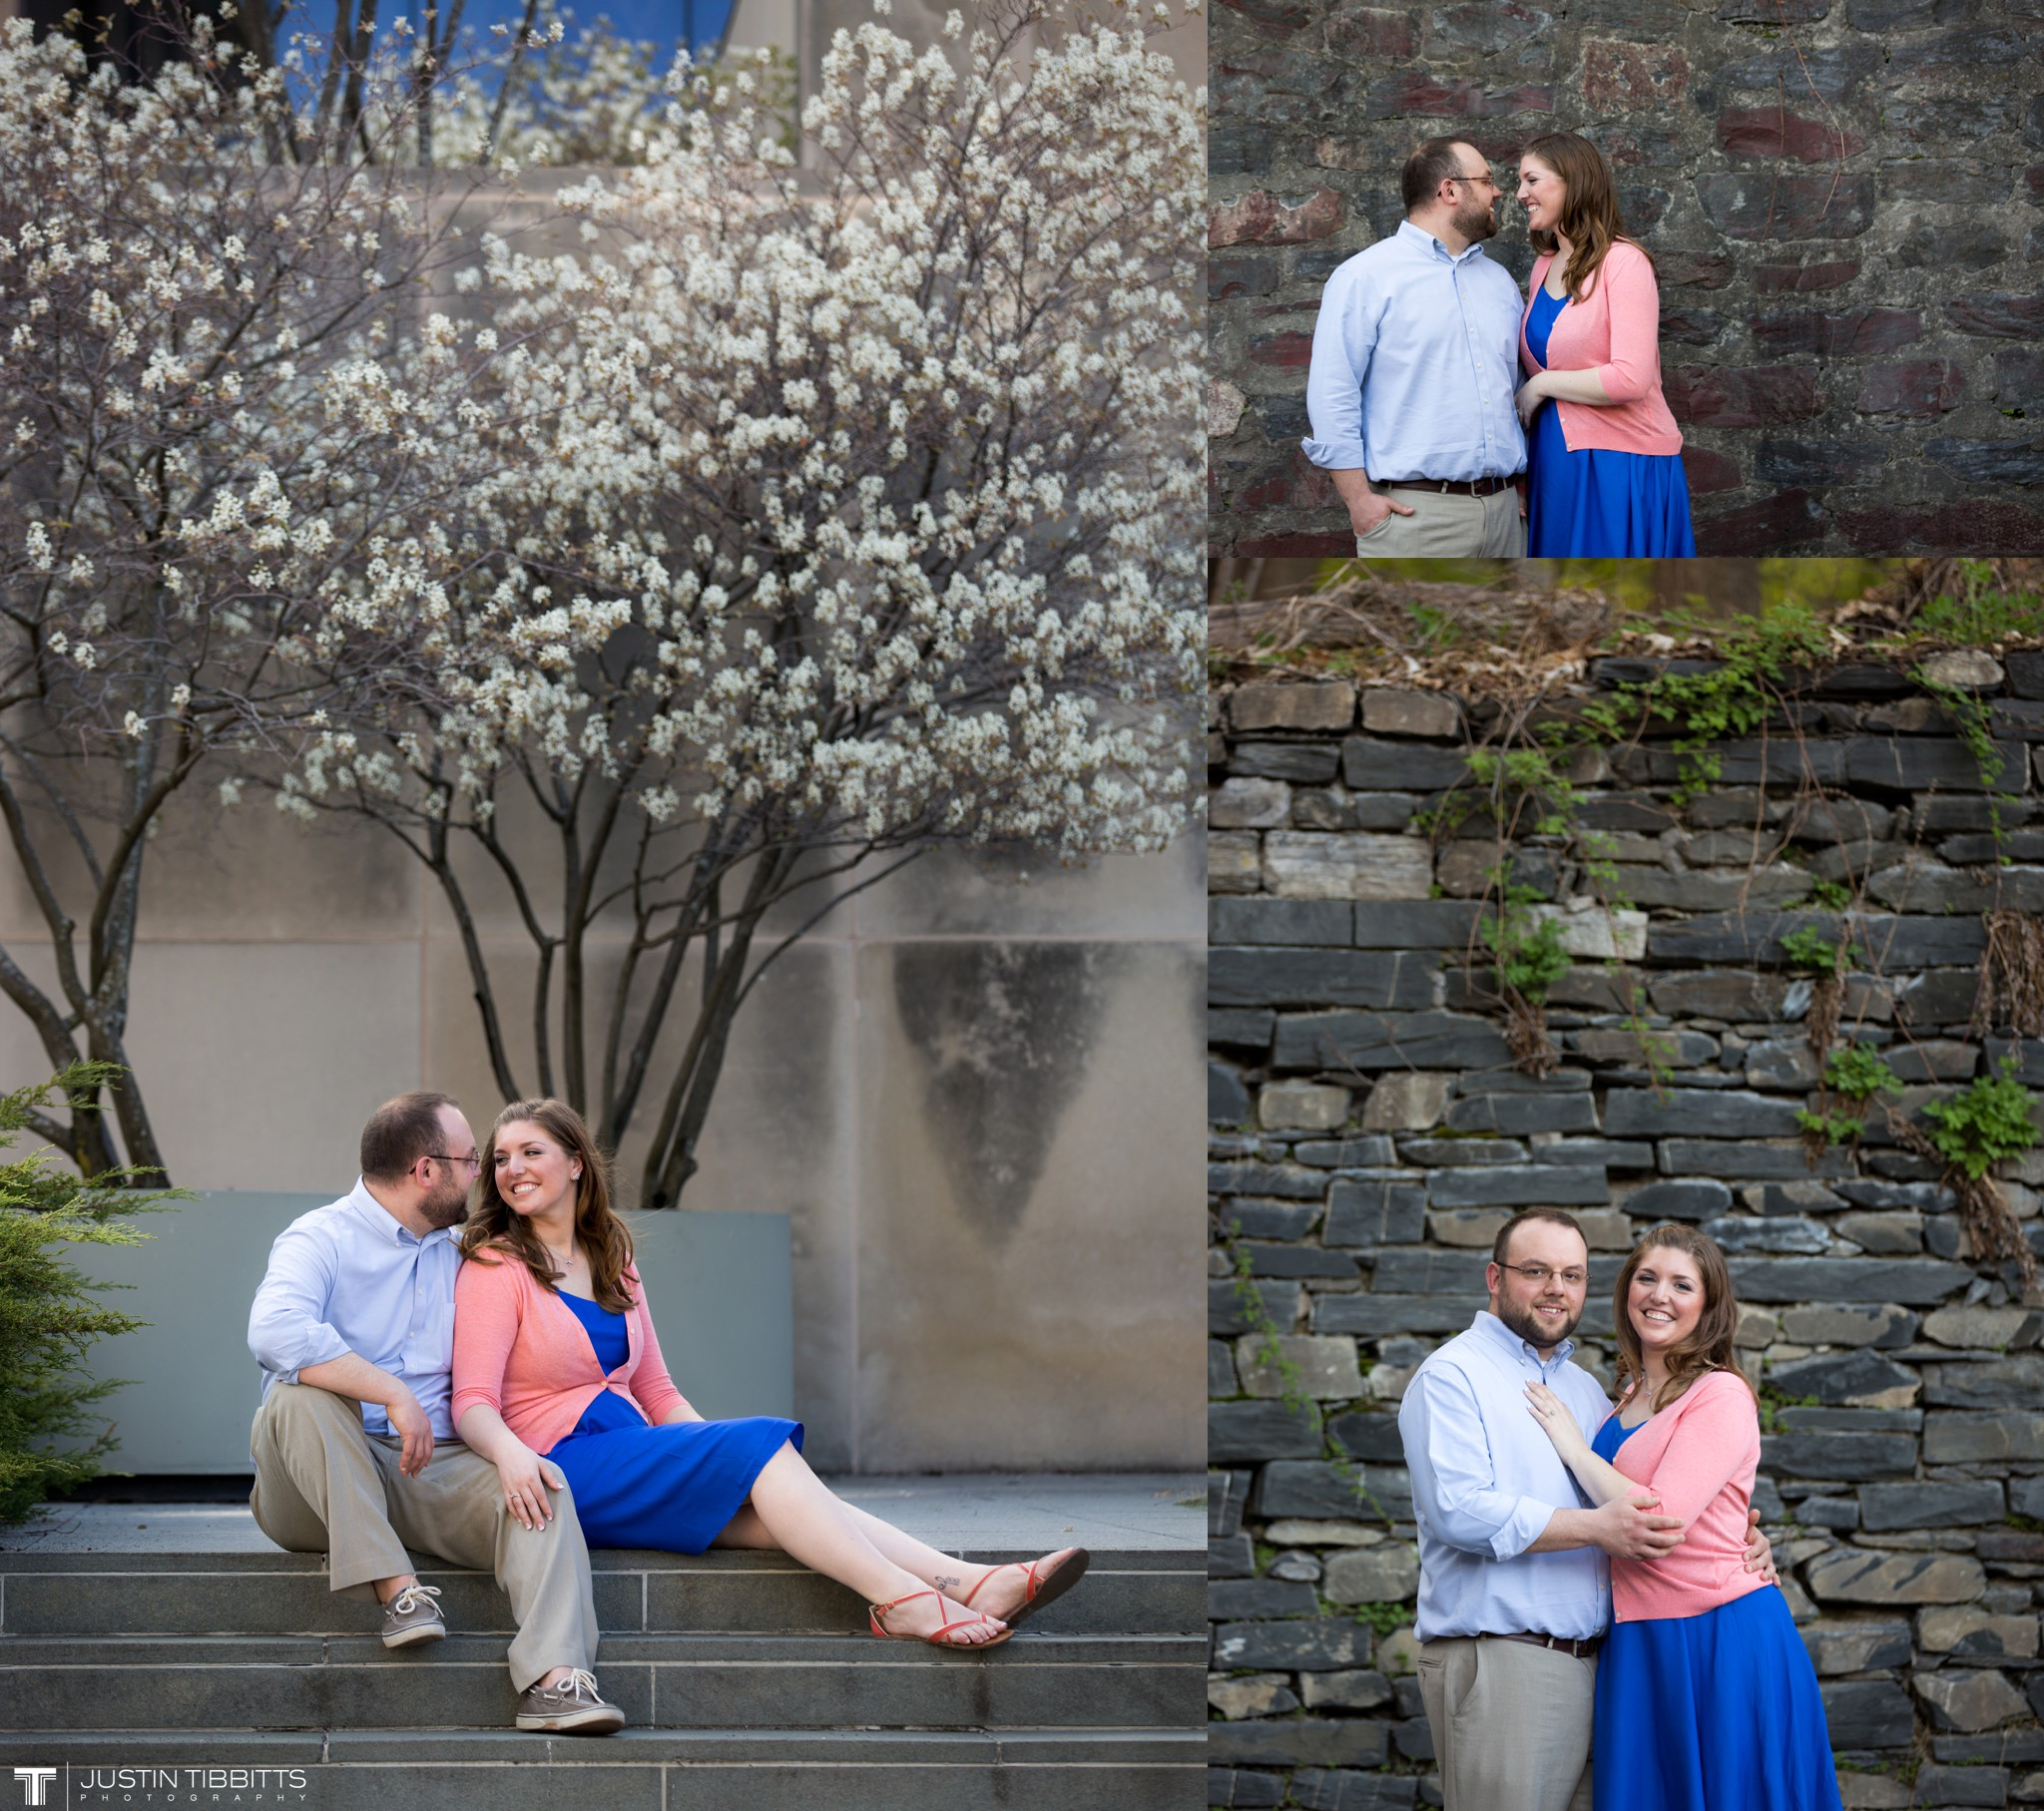 Justin Tibbitts Photography Sara and Erics Albany NY Engagement Photoshoot-18